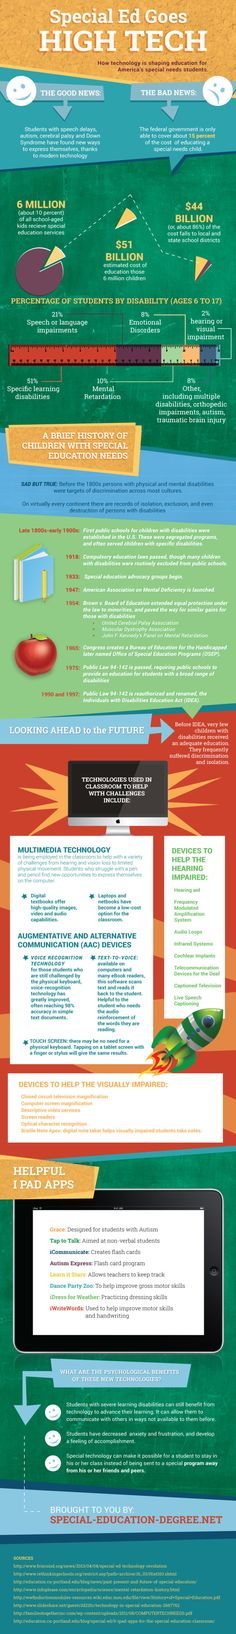 This handy infographic takes a look at what types of technologies students are using, what types of special needs students have, and some interesting information on what some of the popular technologies are.